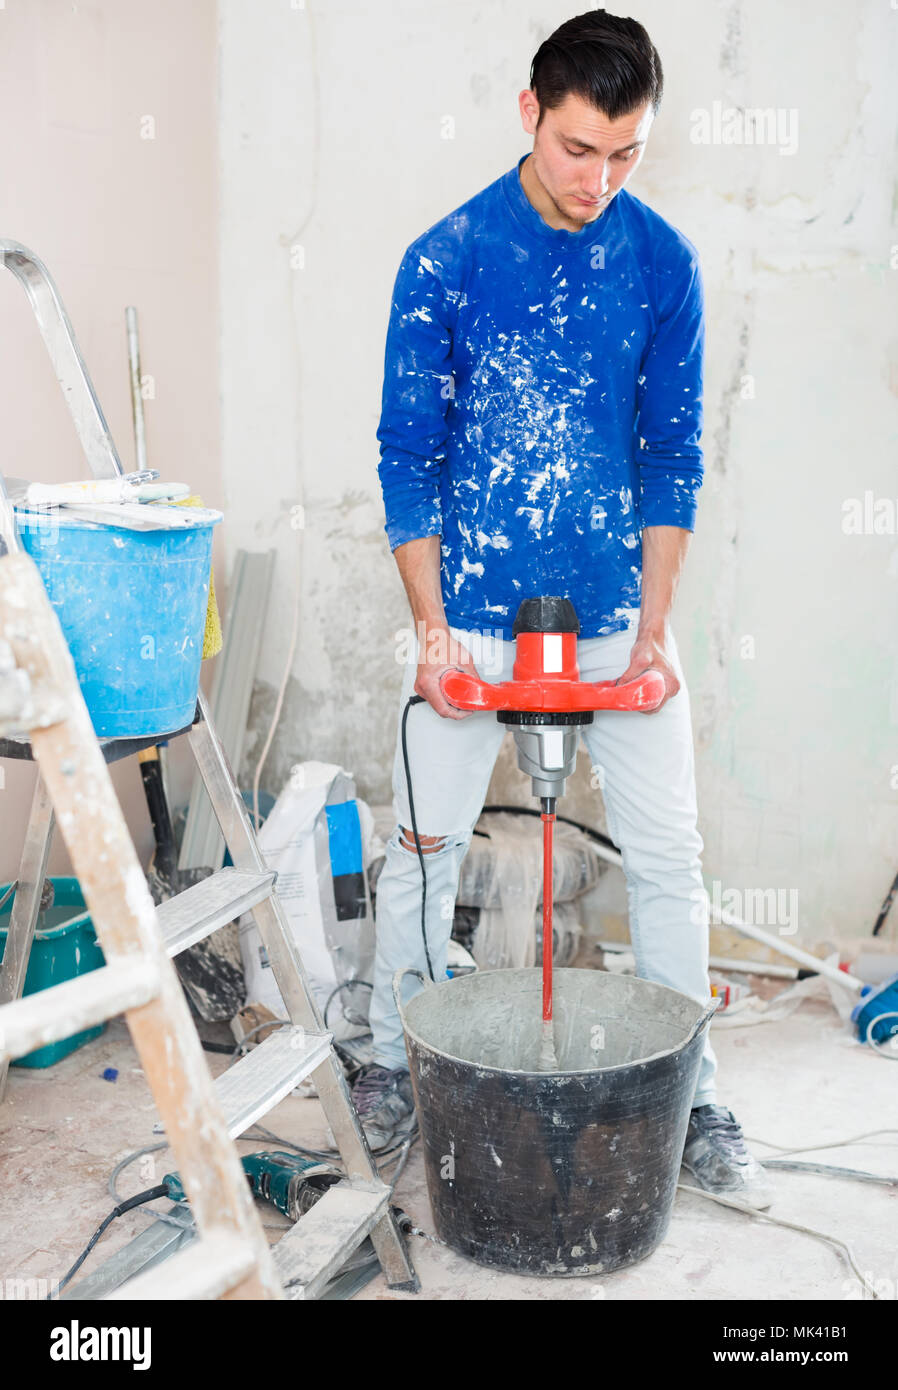 builder mixing plaster in bucket using electric mixer in repairable room Stock Photo